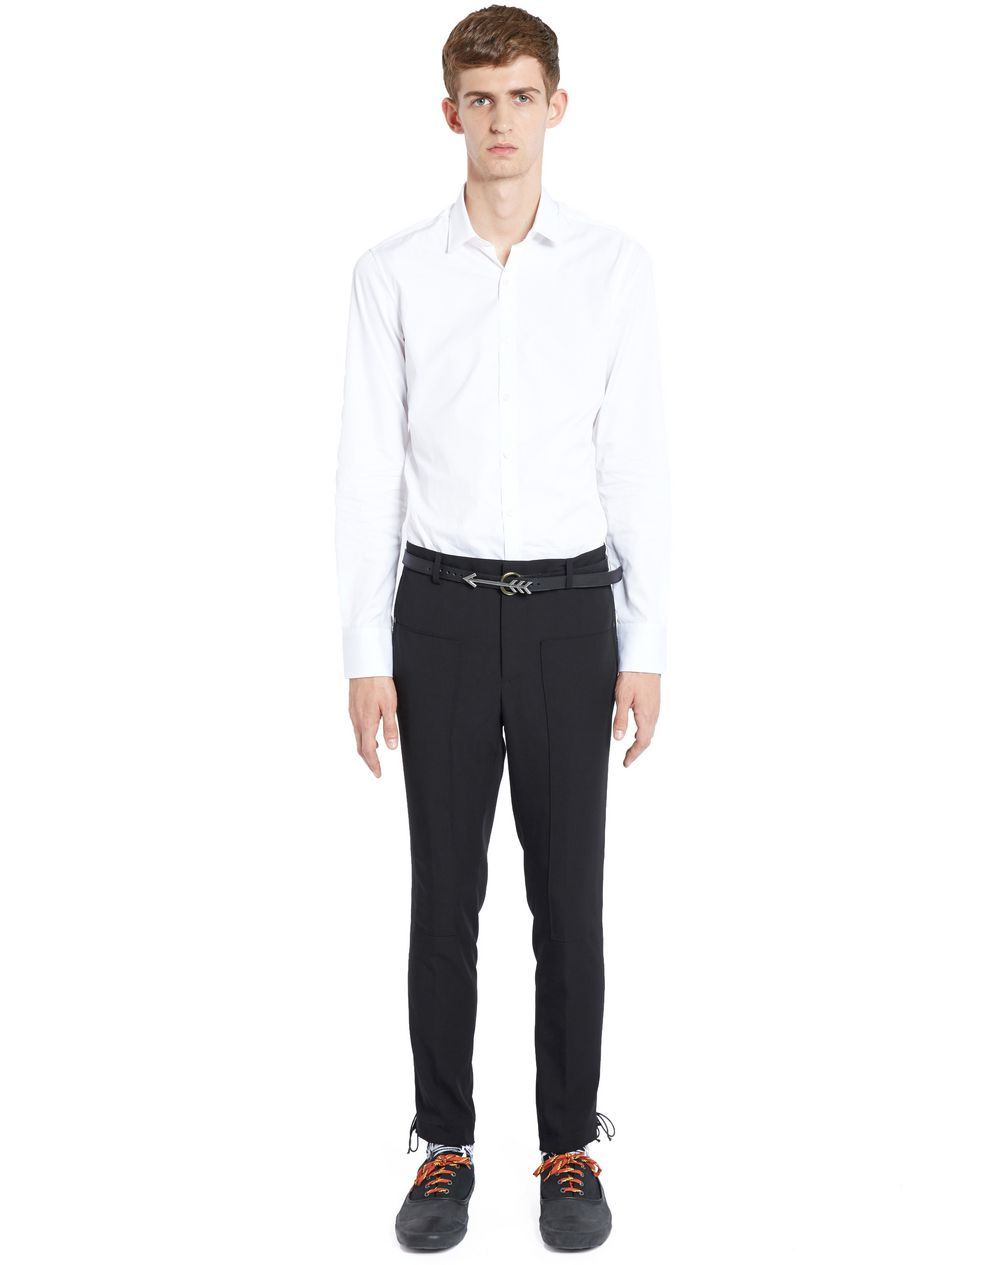 SLIM-FIT TROUSERS WITH SIDE LACES - Lanvin